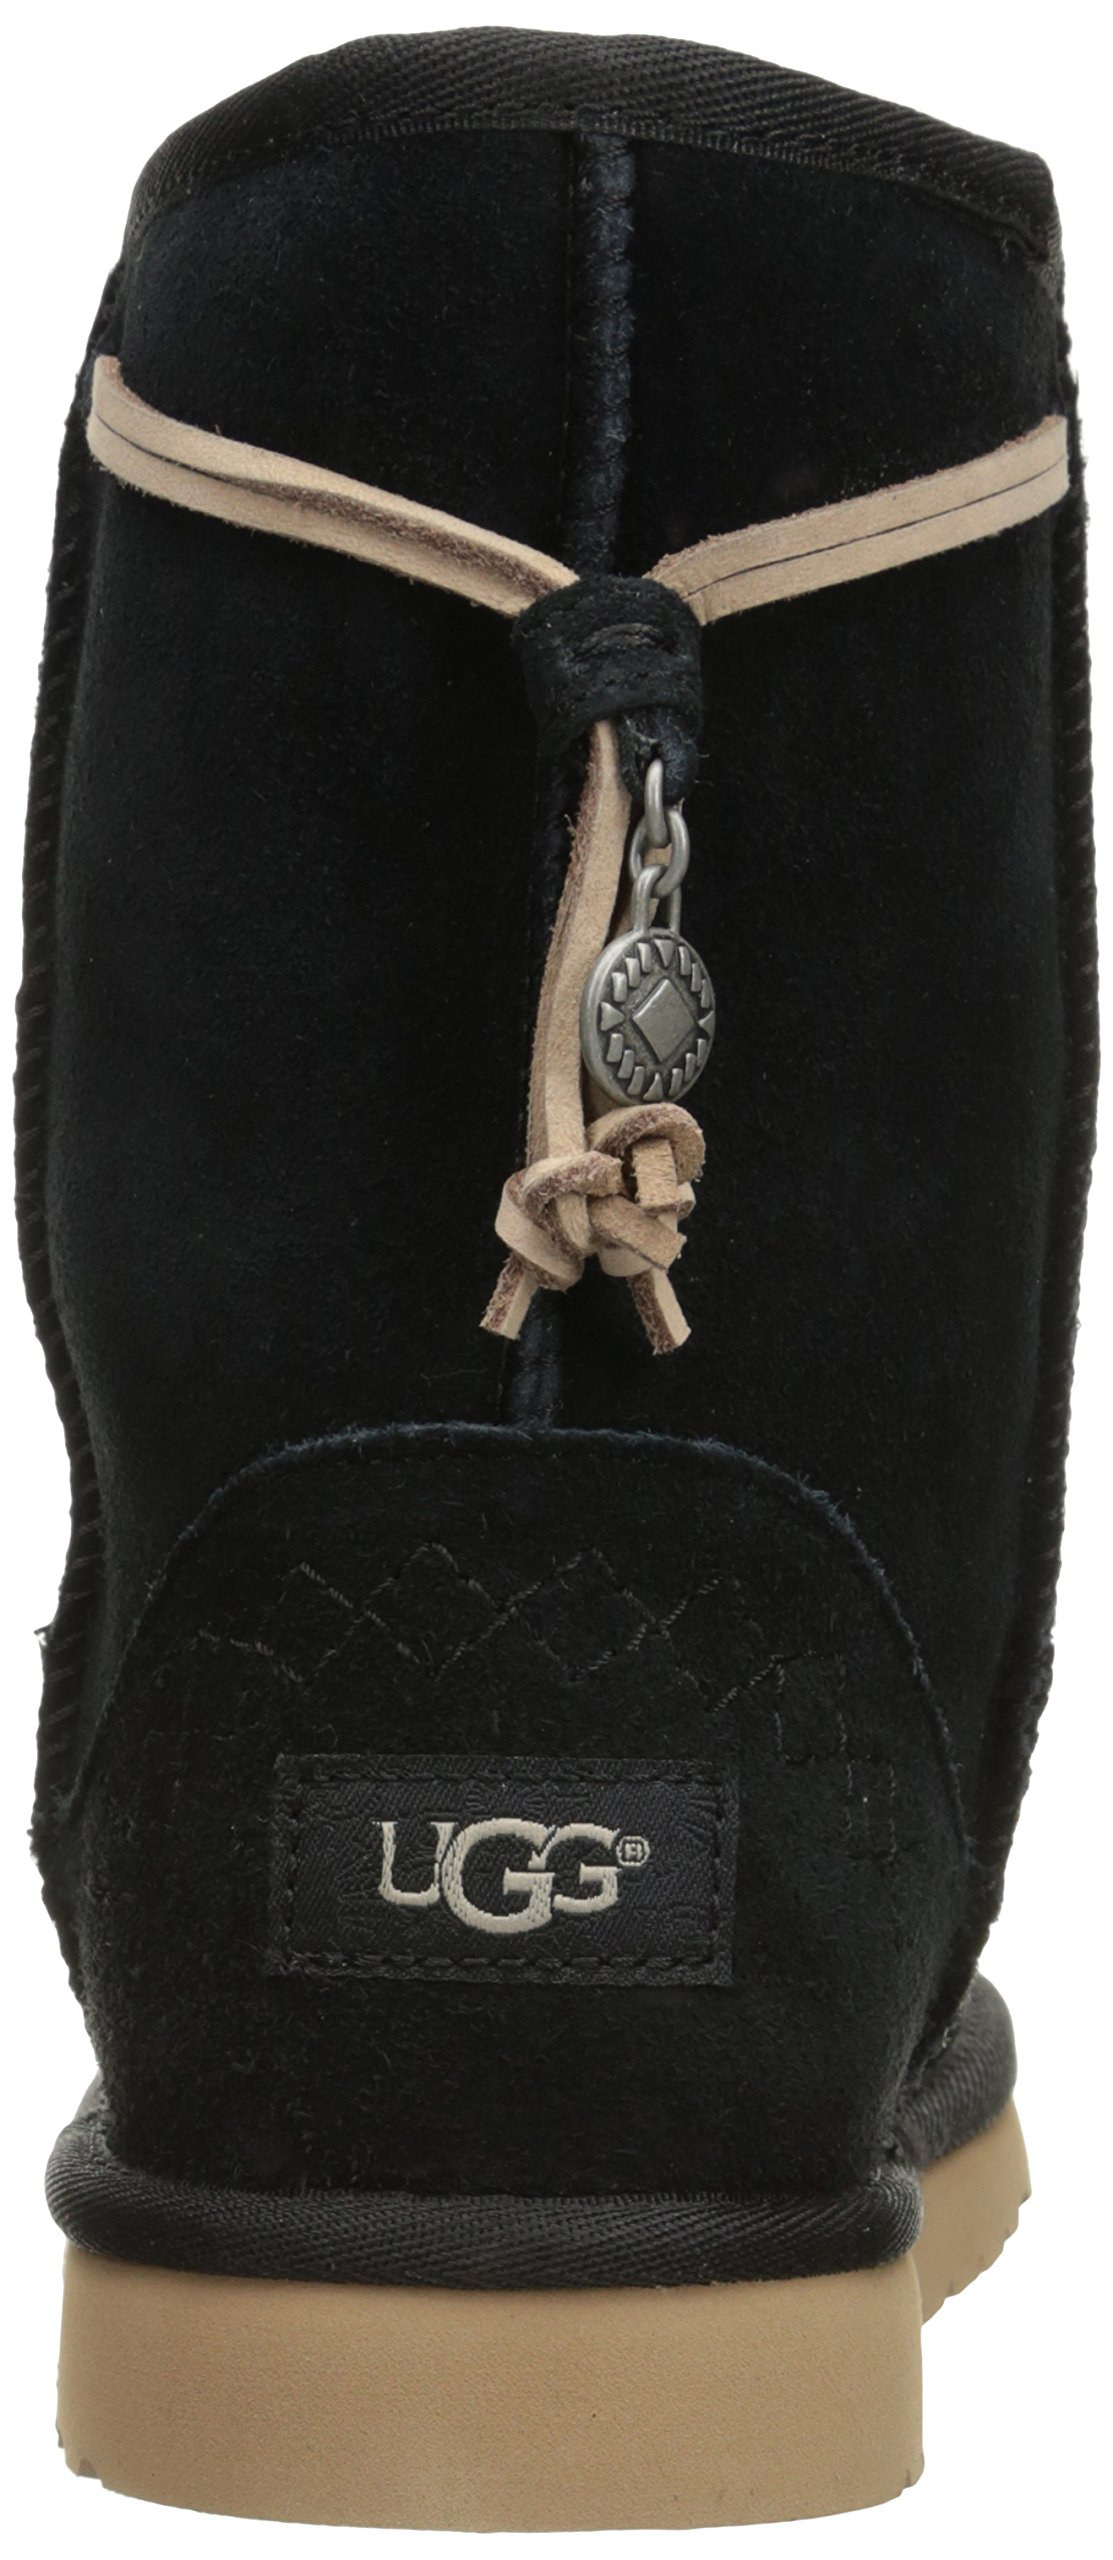 UGG Kids' K Classic Short Carranza Pull-on Boot, Black, 2 M US Little Kid by UGG (Image #2)